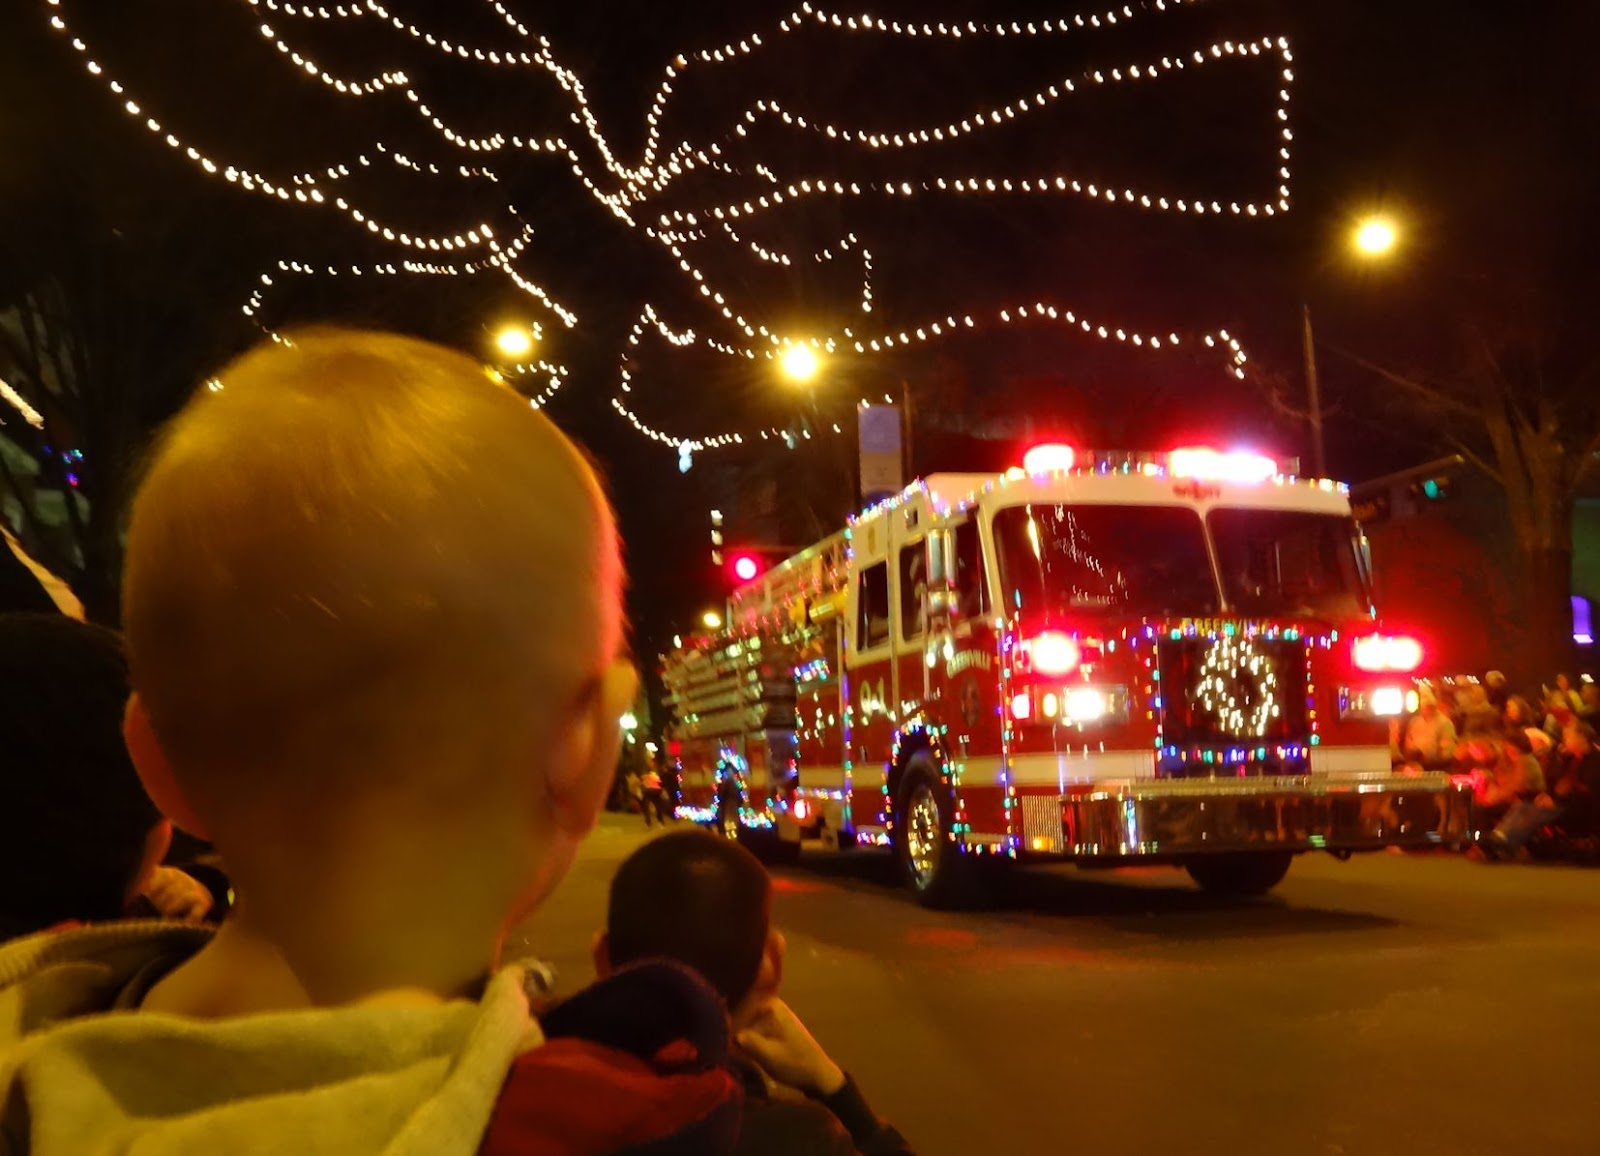 first came this fire engine decked out in full - Greenville Sc Christmas Parade